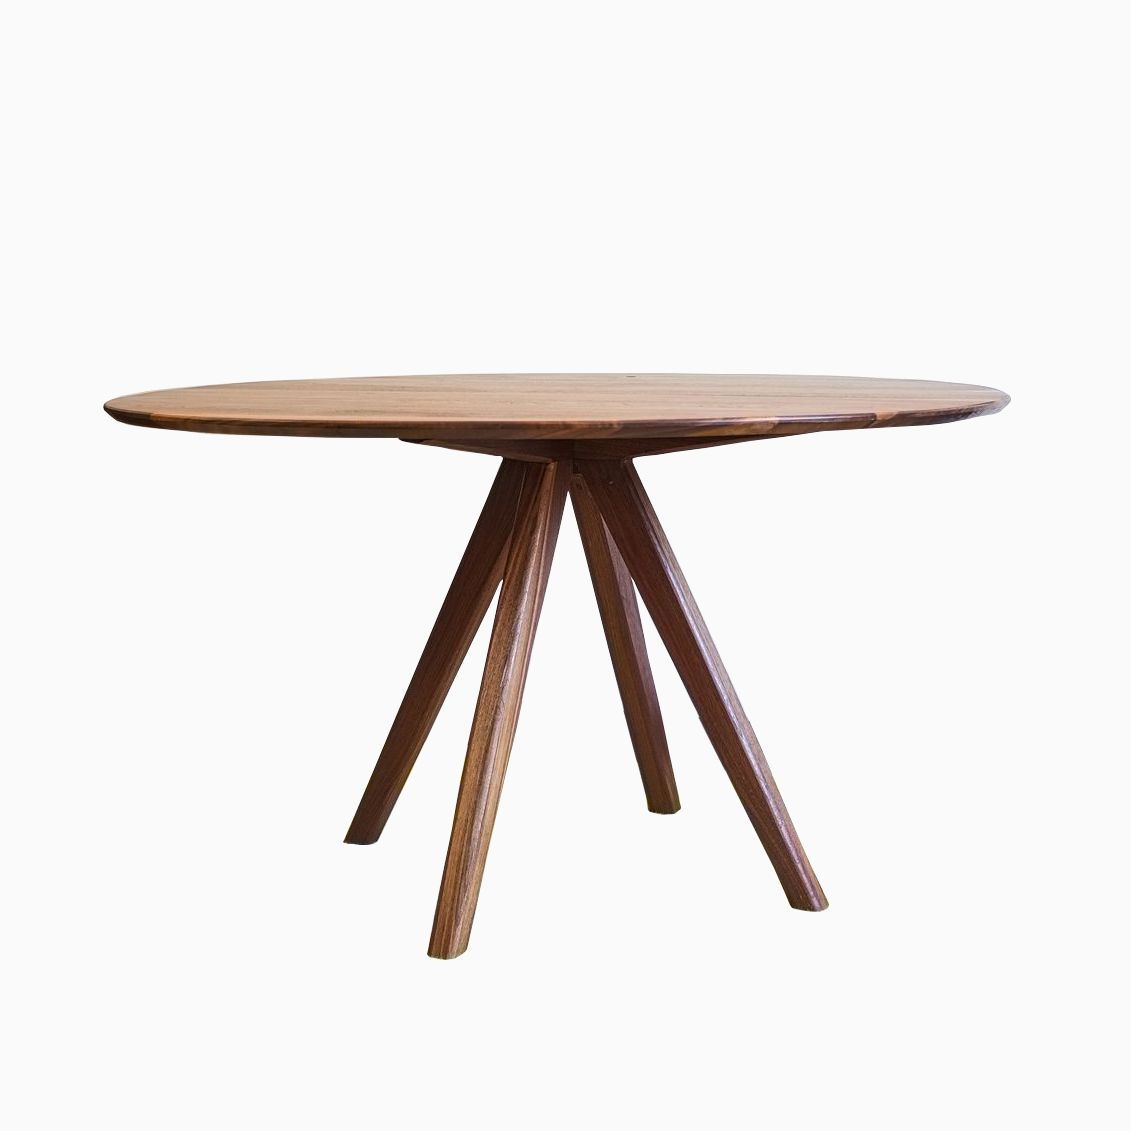 Buy a hand crafted the mila mid century modern solid for Mid century modern dining table